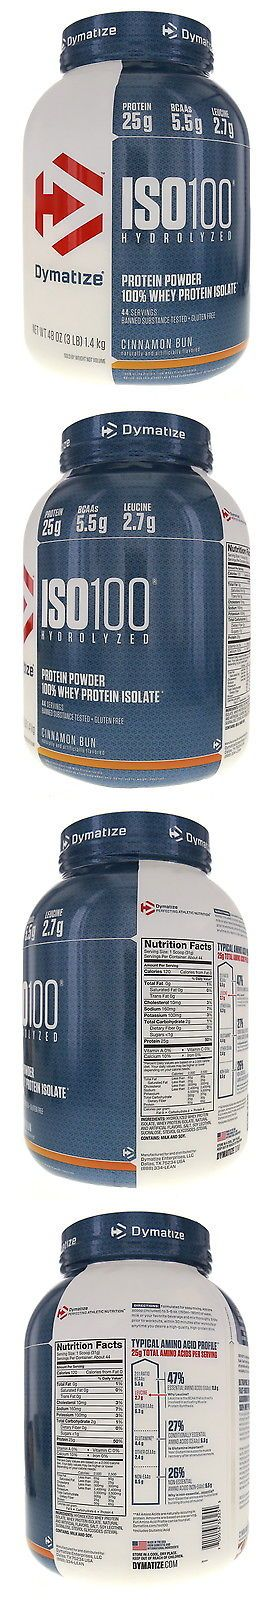 Other Sports Supplements: Dymatize Iso-100 Hydrolyzed 100% Whey Protein Isolate - Cinnamon Bun - 3 Lbs -> BUY IT NOW ONLY: $54.11 on eBay!